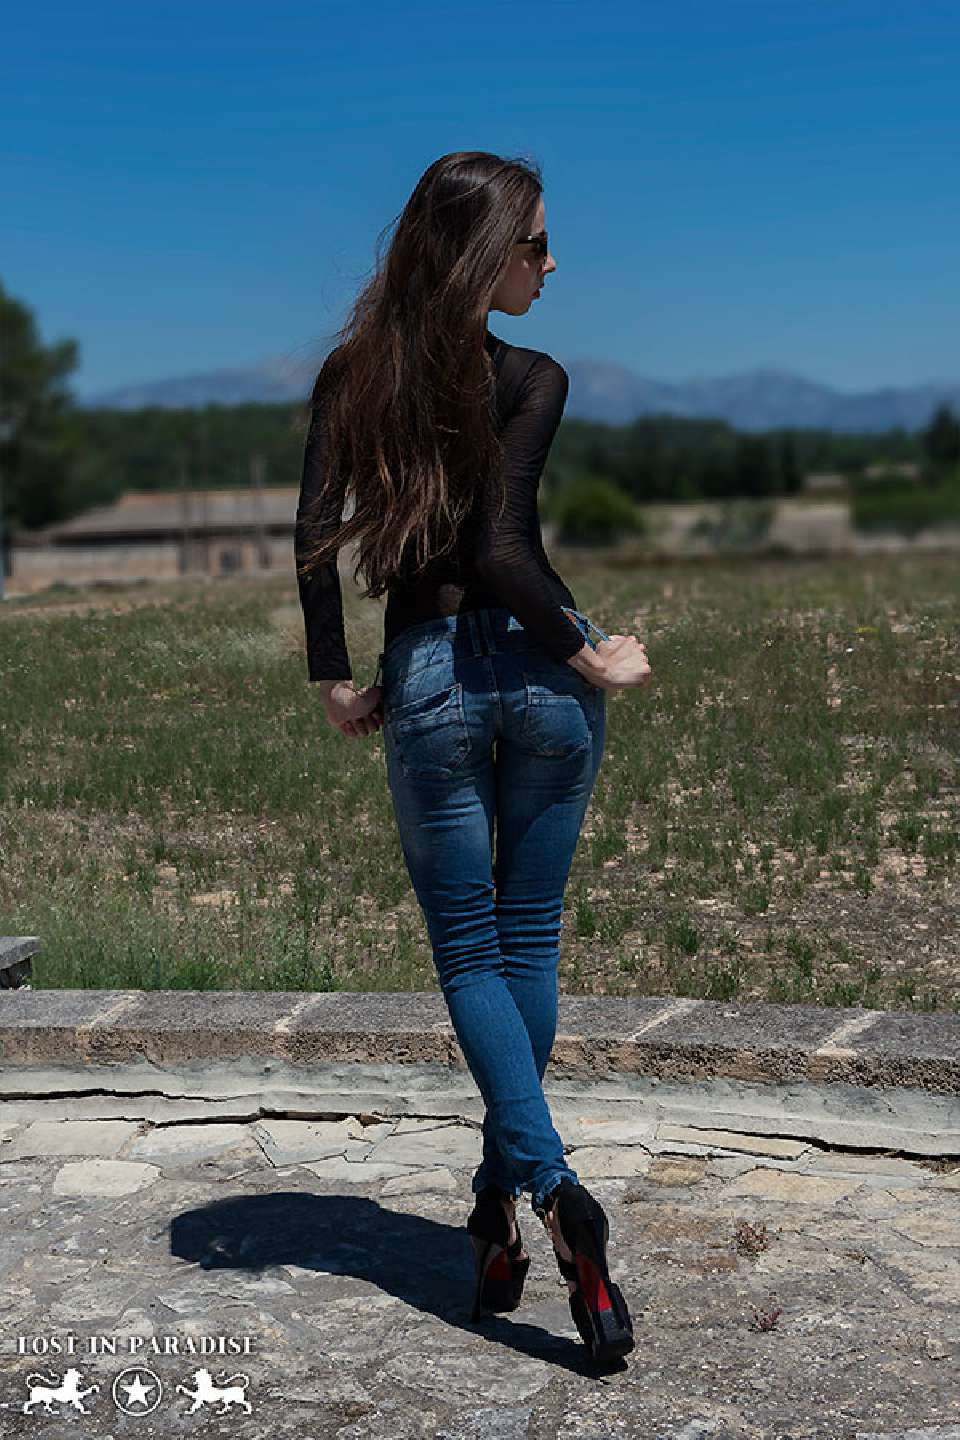 Model Simi Editorial Shooting for Lost in Paradise Jeans at Mallorca with Sedarts